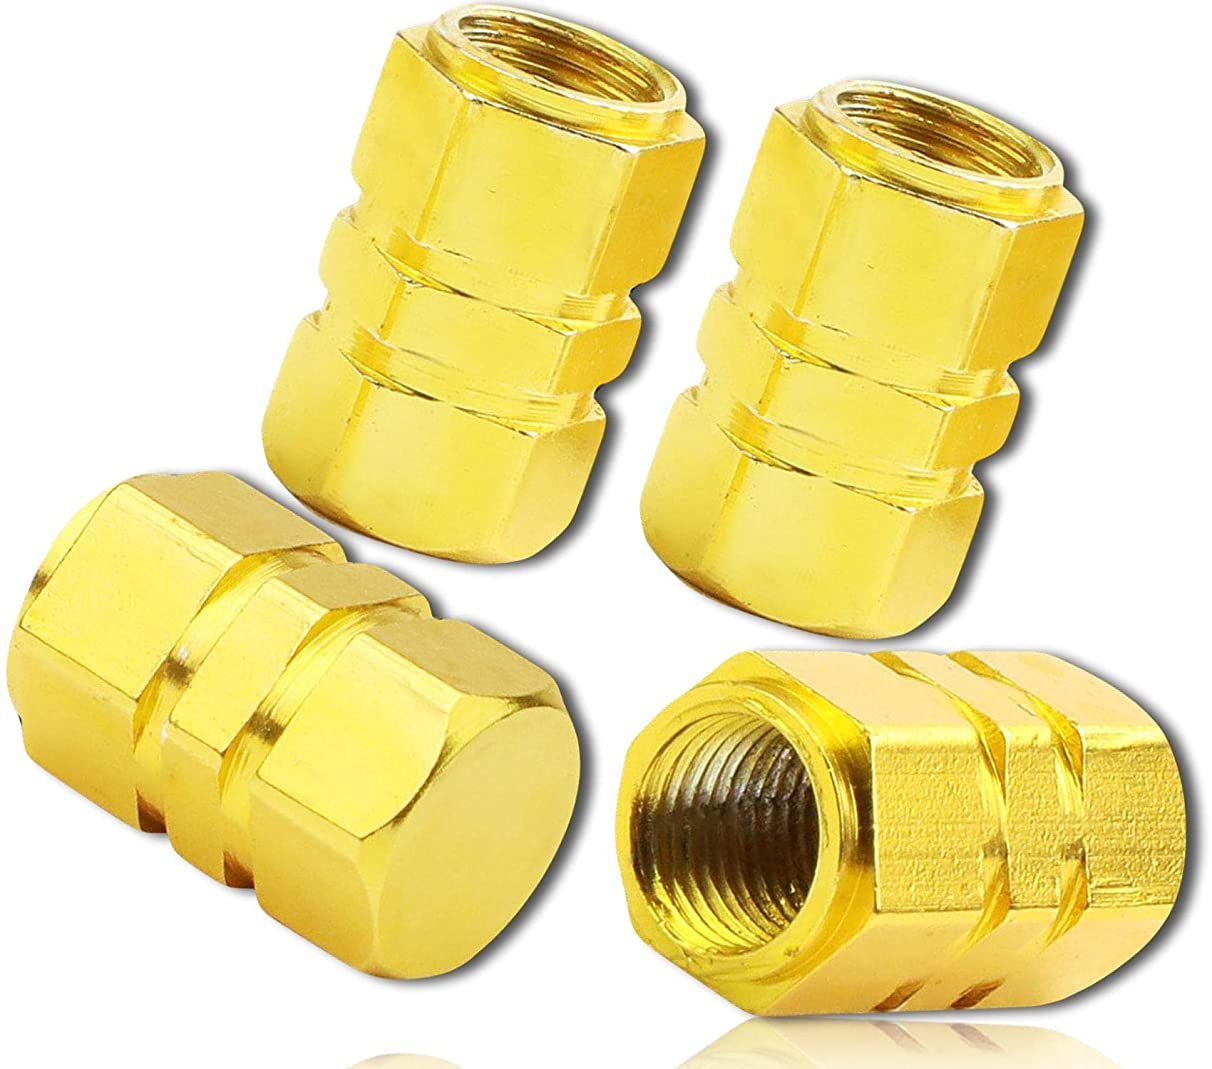 (4 Count) Custom Tire Wheel Rim Valve Stem Dust Cap Cover Seal w/ Easy Grip Texture, Made of Rust Proof Aluminum Metal w/ Tall Reflective Shiny Hex 6 Sided Head Sunshine Tone {Yellow} + Certificate